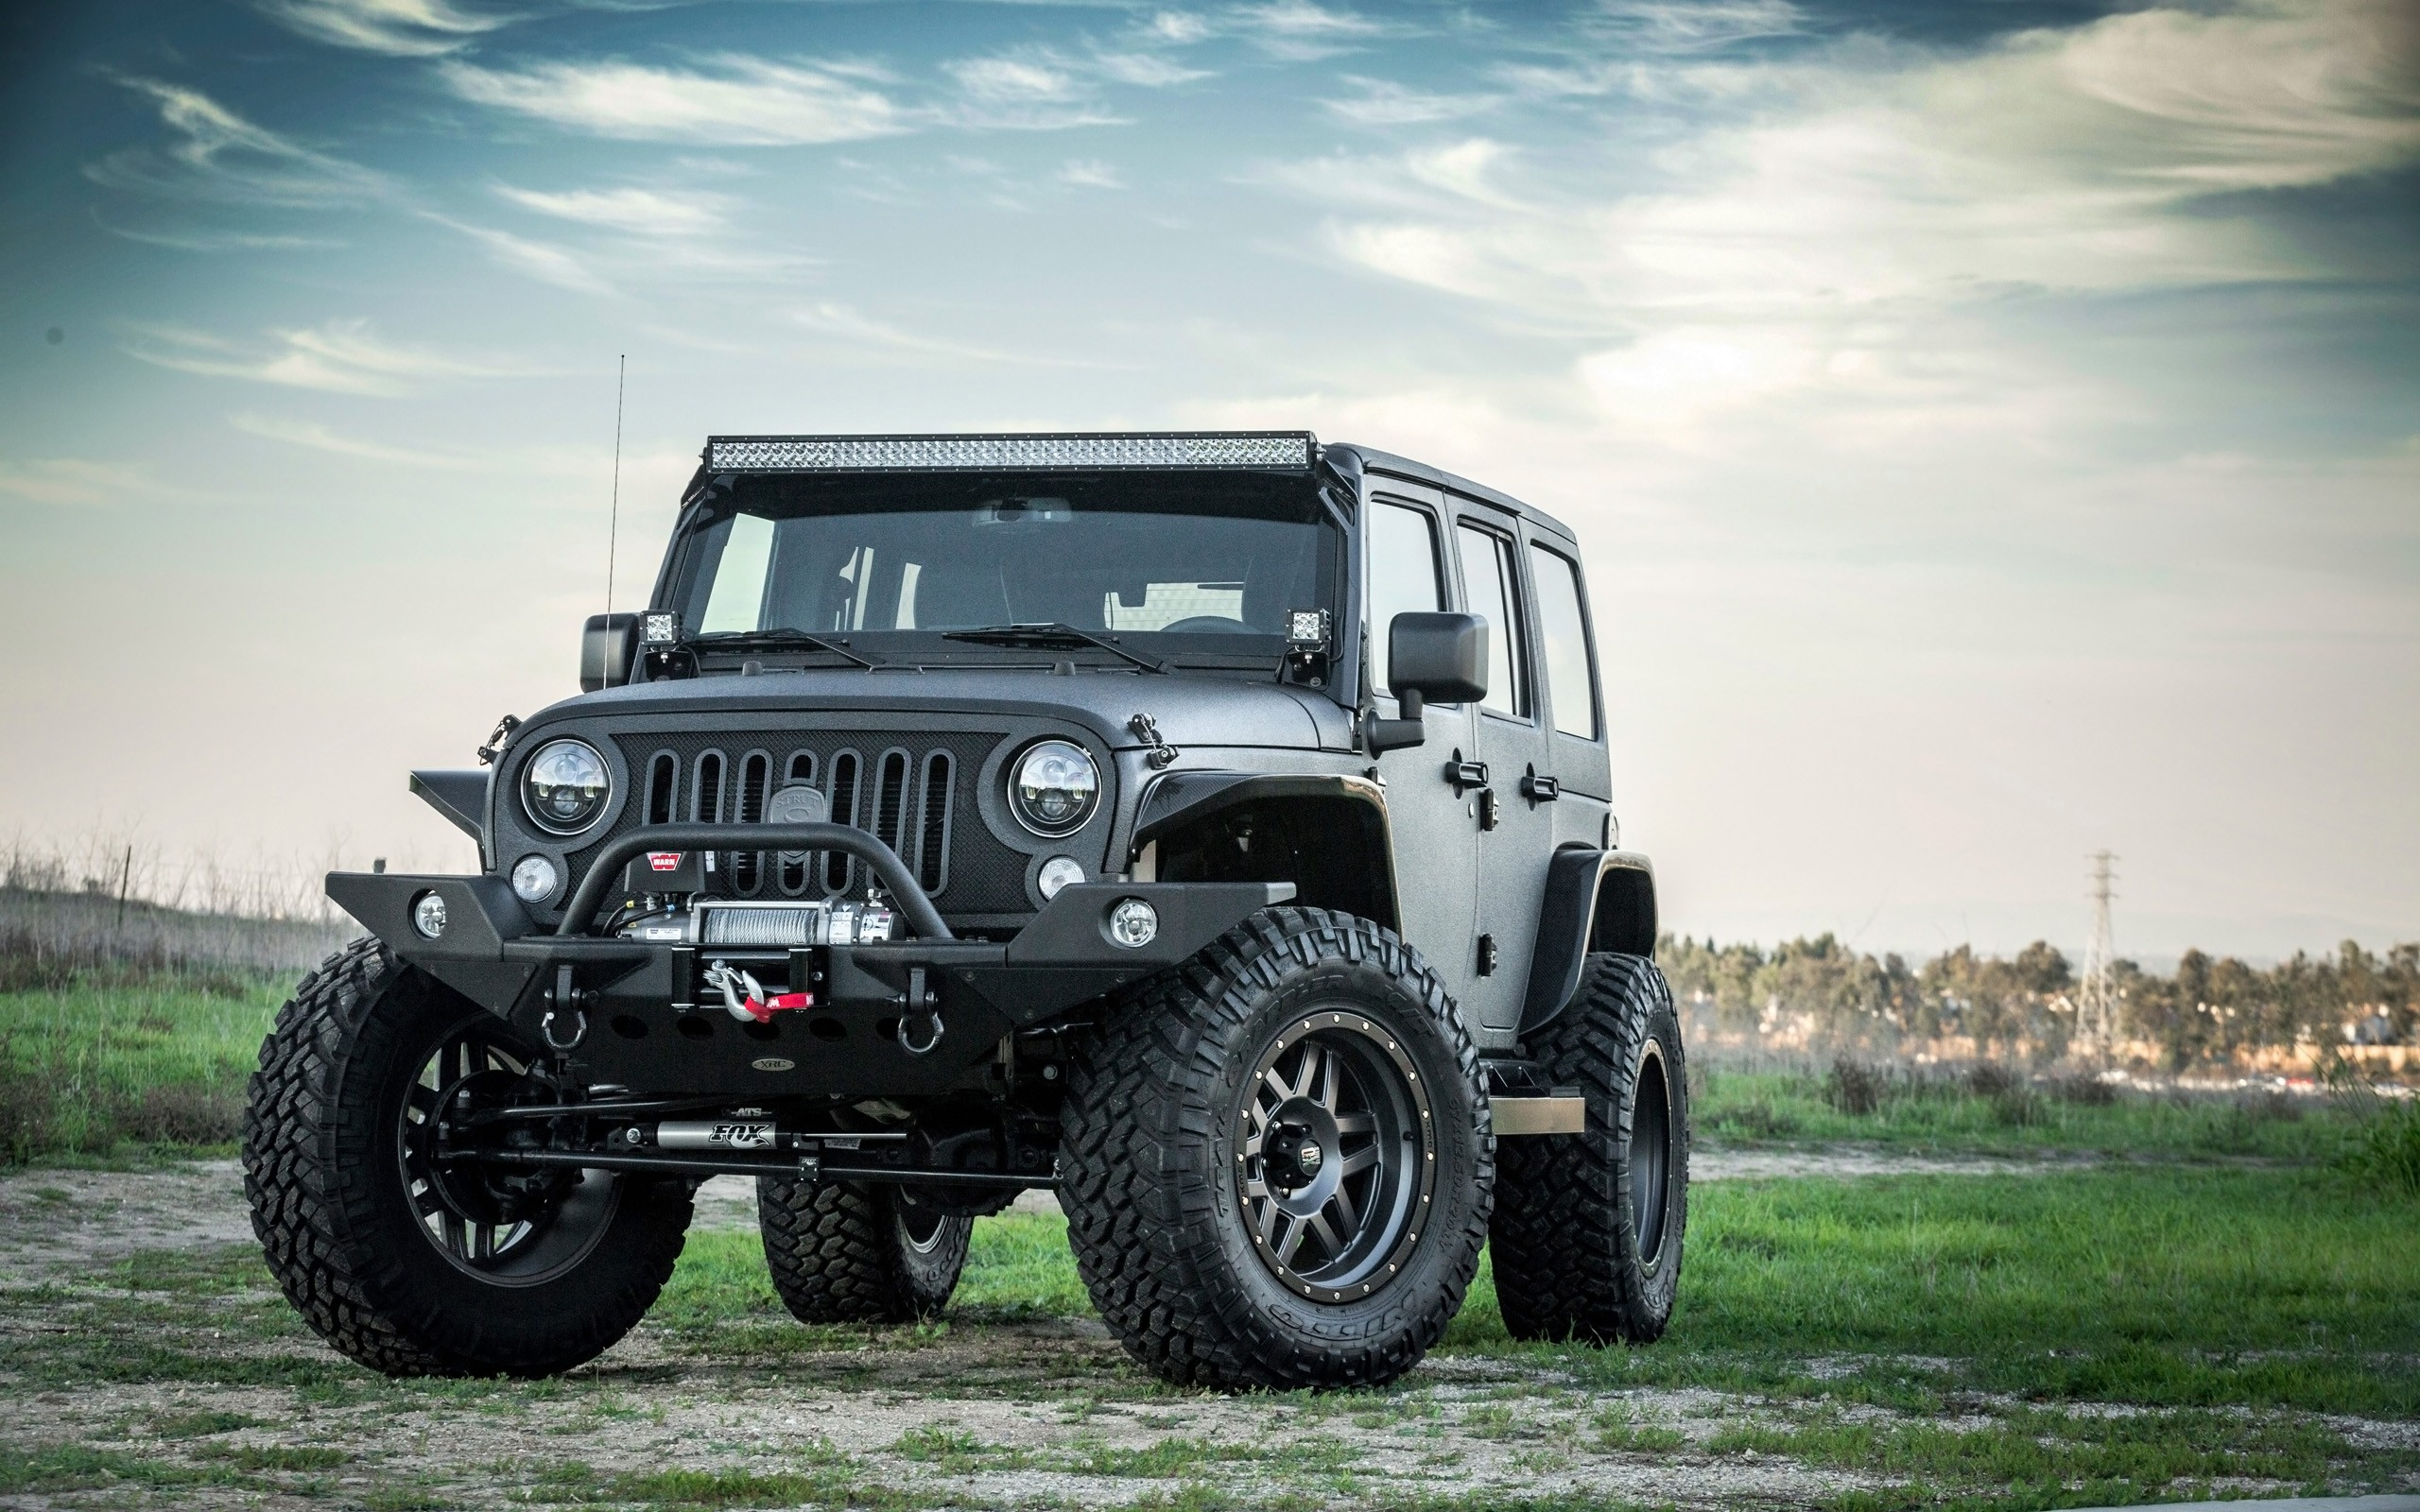 2015 STRUT Jeep Wrangler Wallpaper HD Car Wallpapers